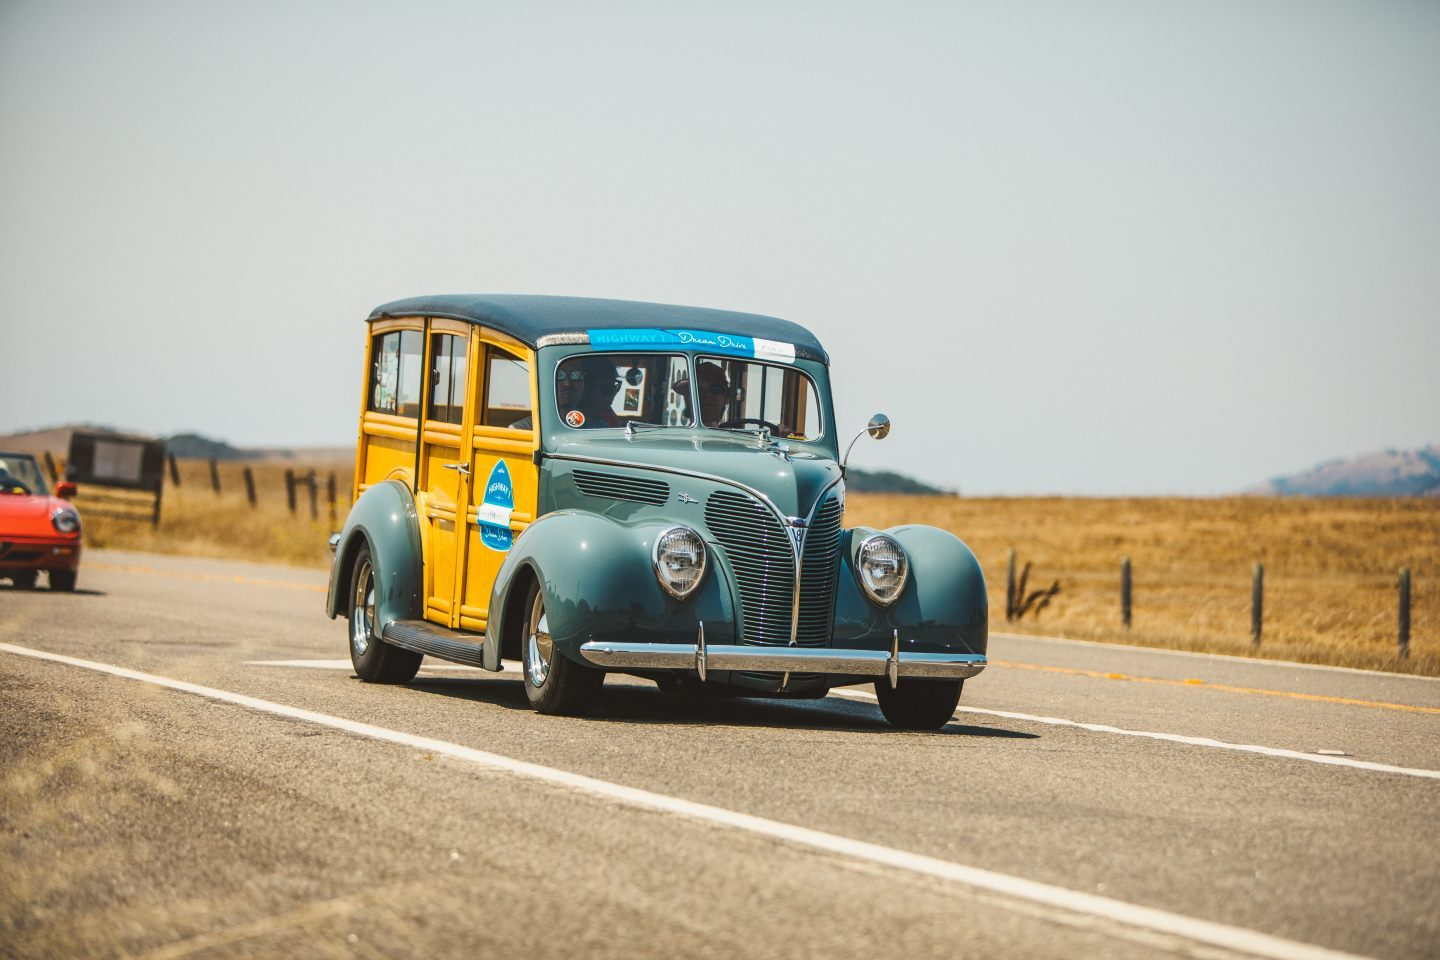 A woody on Highway 1 at the Dream Drive